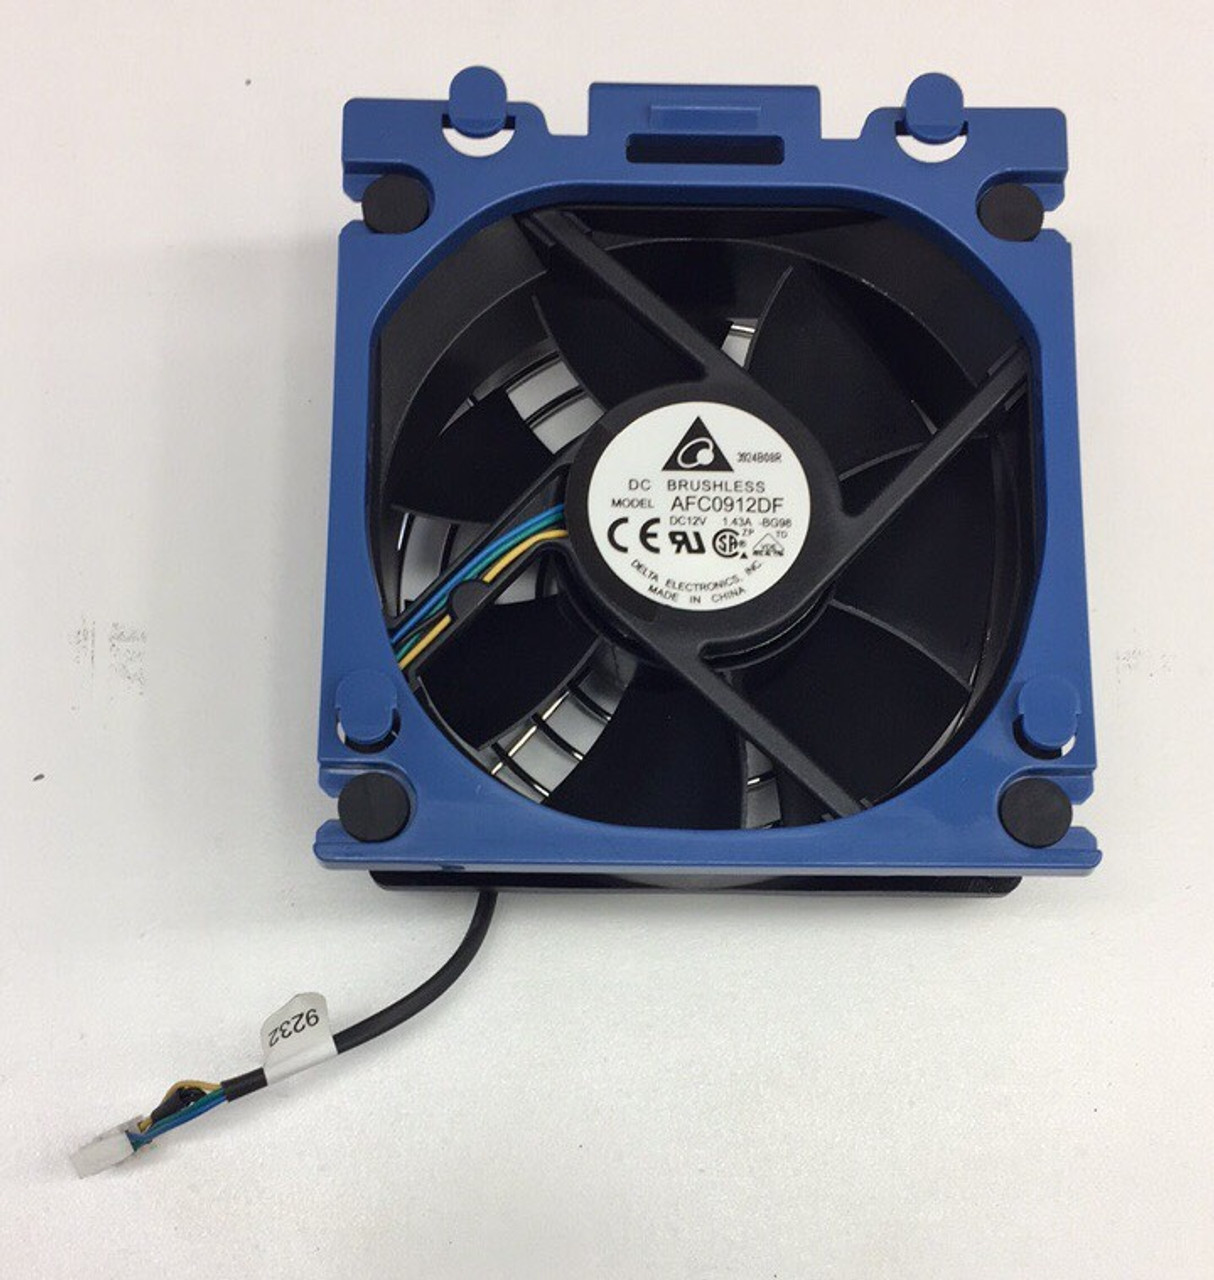 HP 686748-001 Rear system (processor) fan assembly - 92mm (3.62 inch) x 92mm (3.62 inch) x 32mm (1.26 inch) - Includes the fan blue retainer carrier and cable assembly